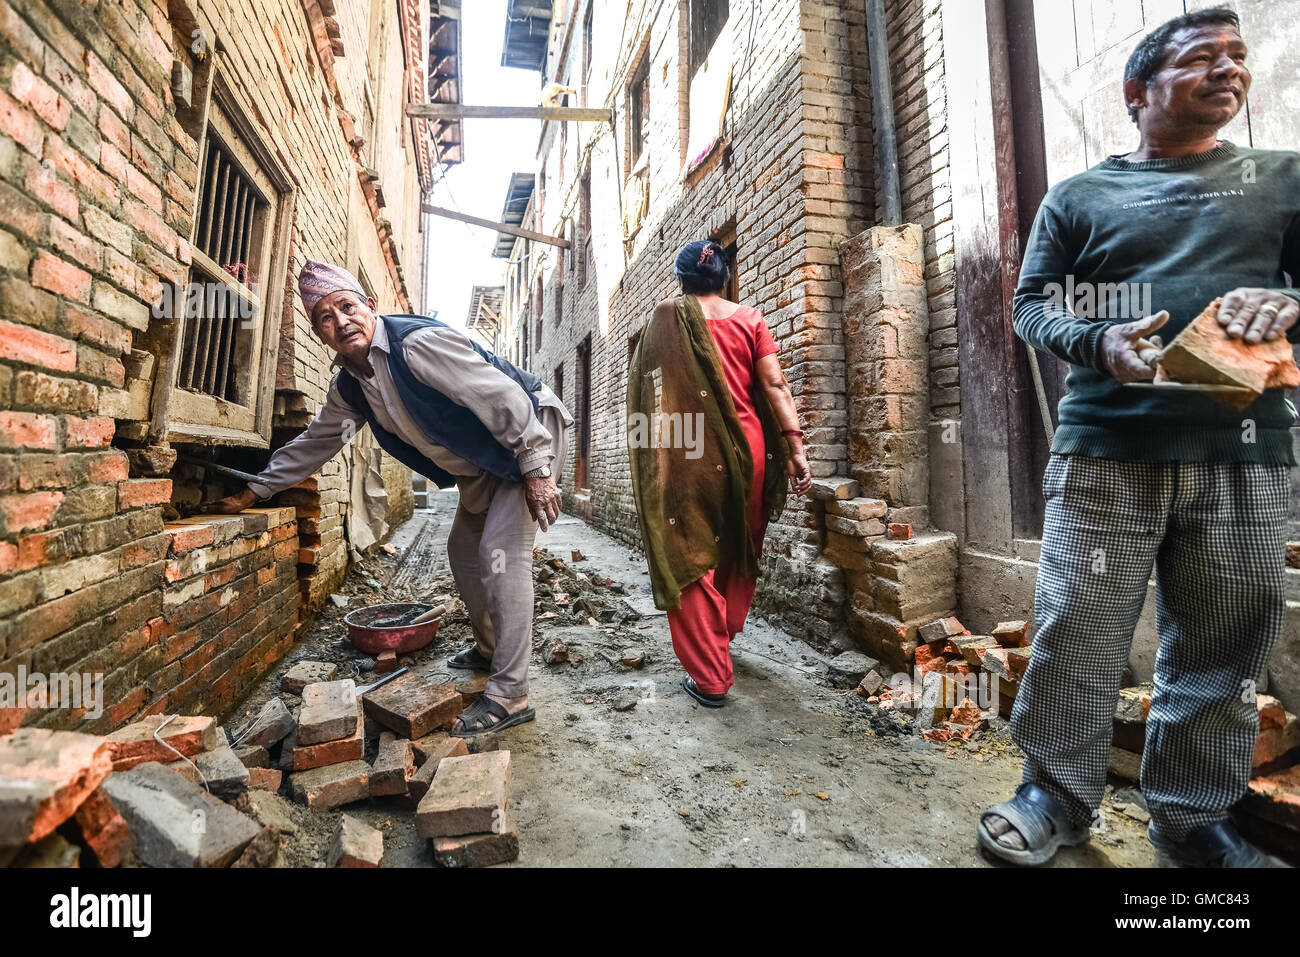 Men doing construction work in Bhaktapur, Nepal. © Reynold Sumayku Stock Photo